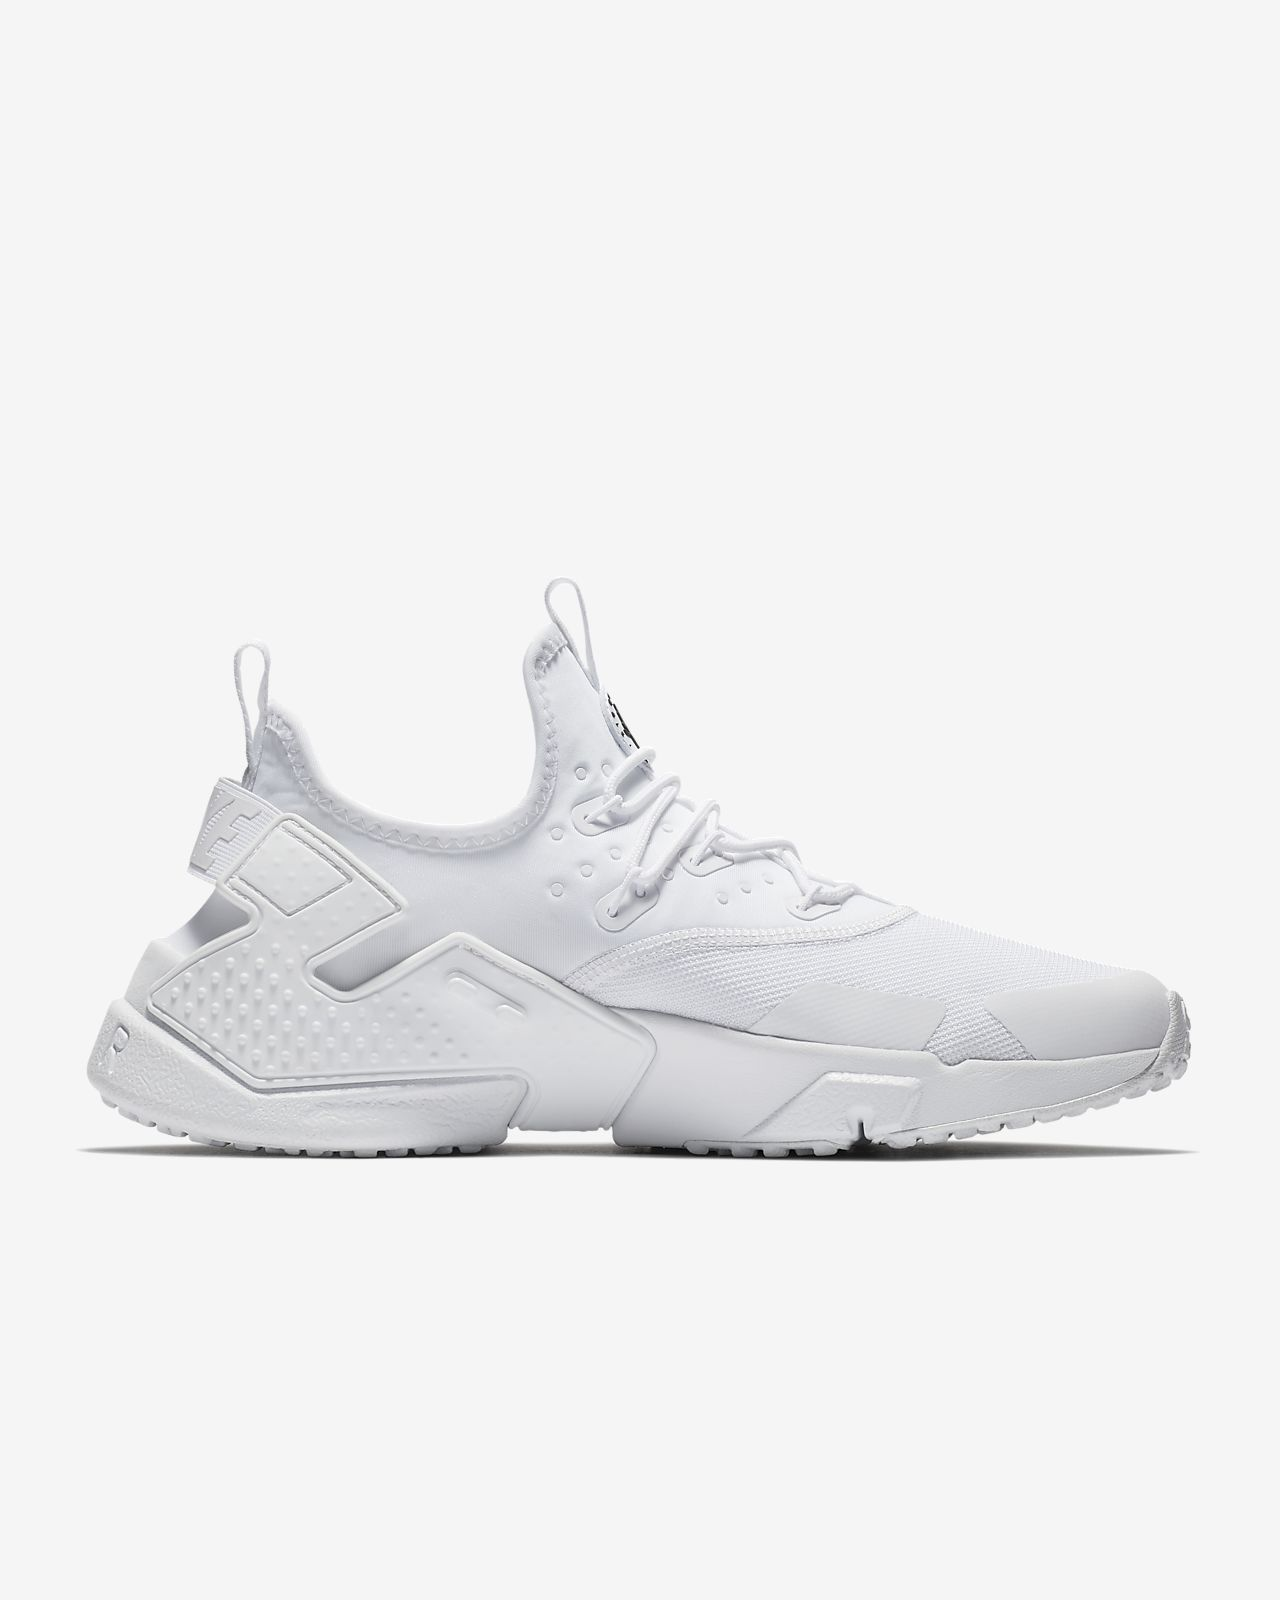 official photos 77bb5 37602 ... Nike Air Huarache Drift Men s Shoe